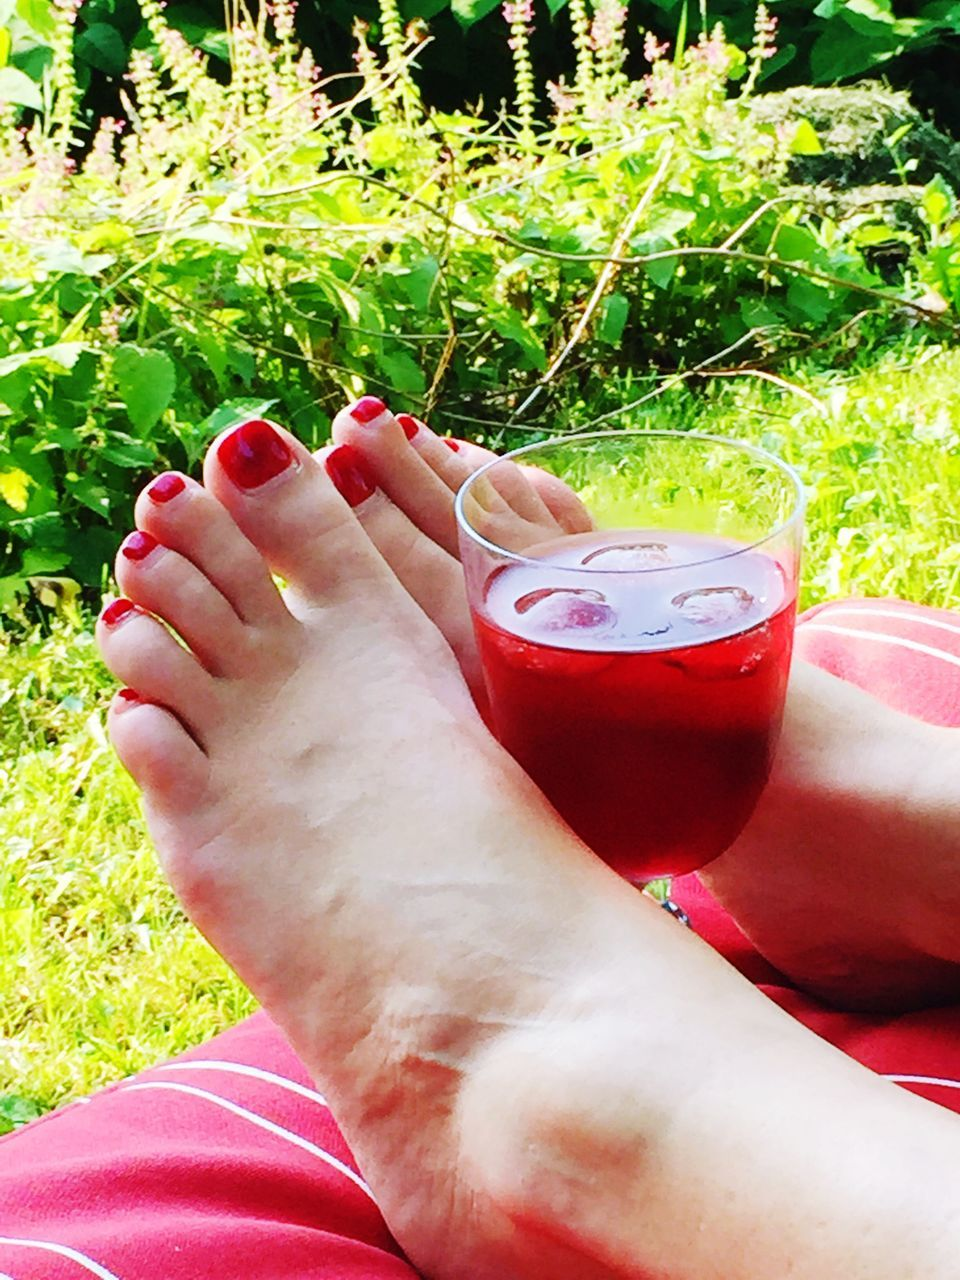 barefoot, low section, human leg, drink, refreshment, real people, red, human body part, human foot, food and drink, one person, leisure activity, personal perspective, grass, day, outdoors, alcohol, drinking glass, relaxation, women, close-up, nail polish, cocktail, lifestyles, nature, freshness, adult, people